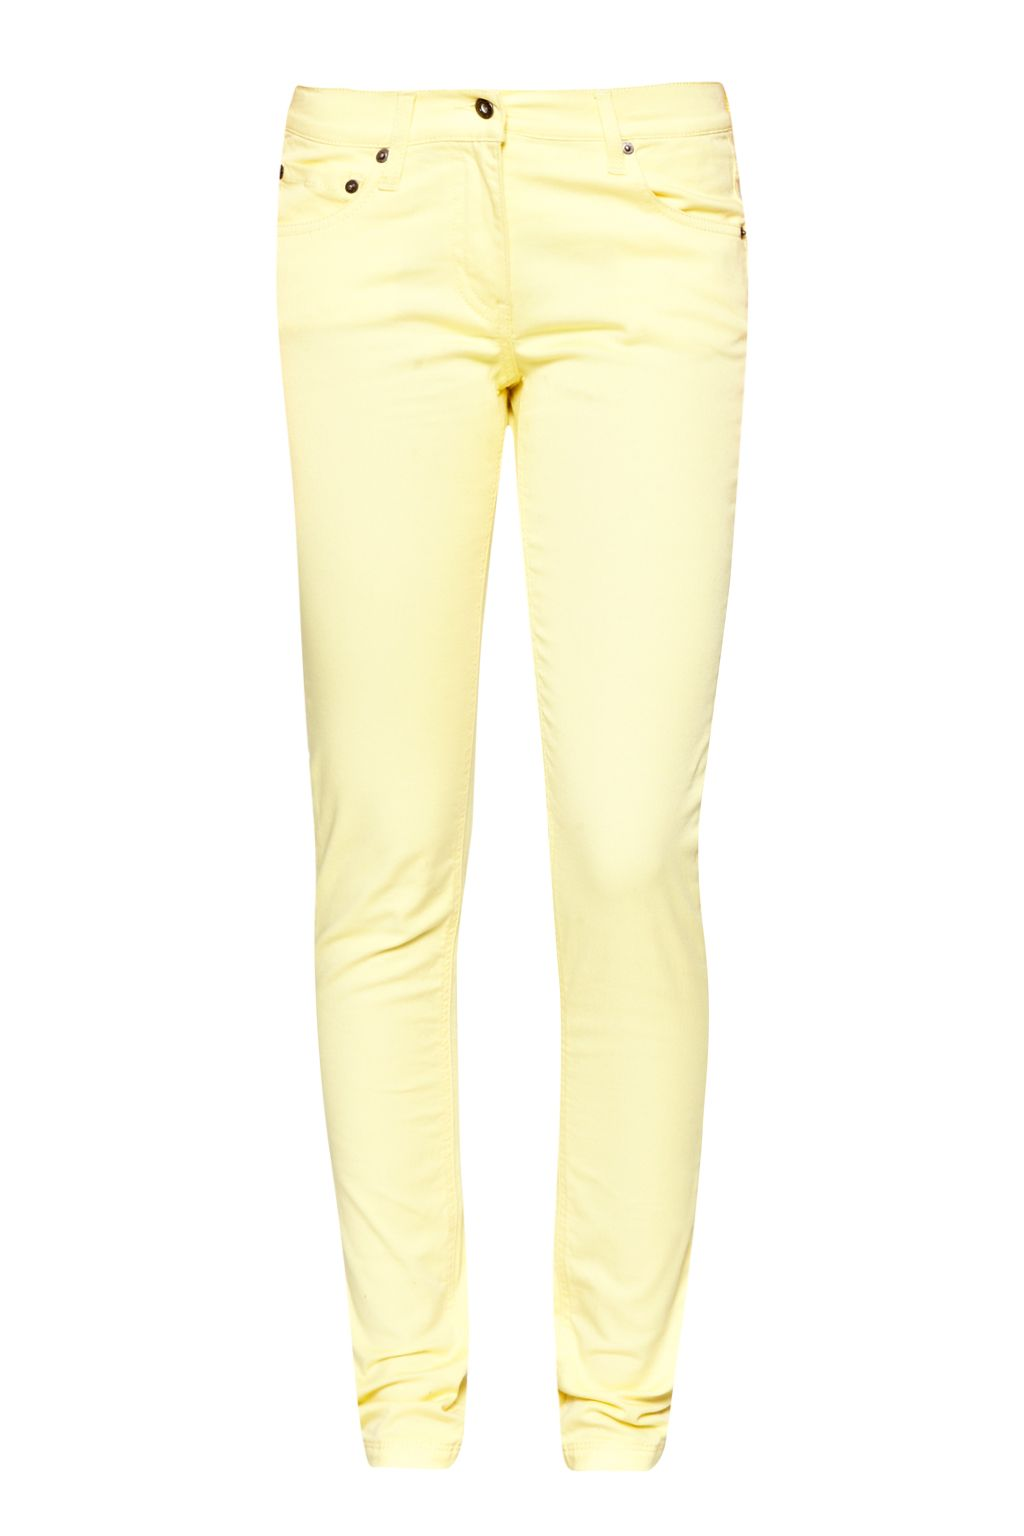 Free shipping and returns on Women's Colorful Skinny Jeans at needloanbadcredit.cf